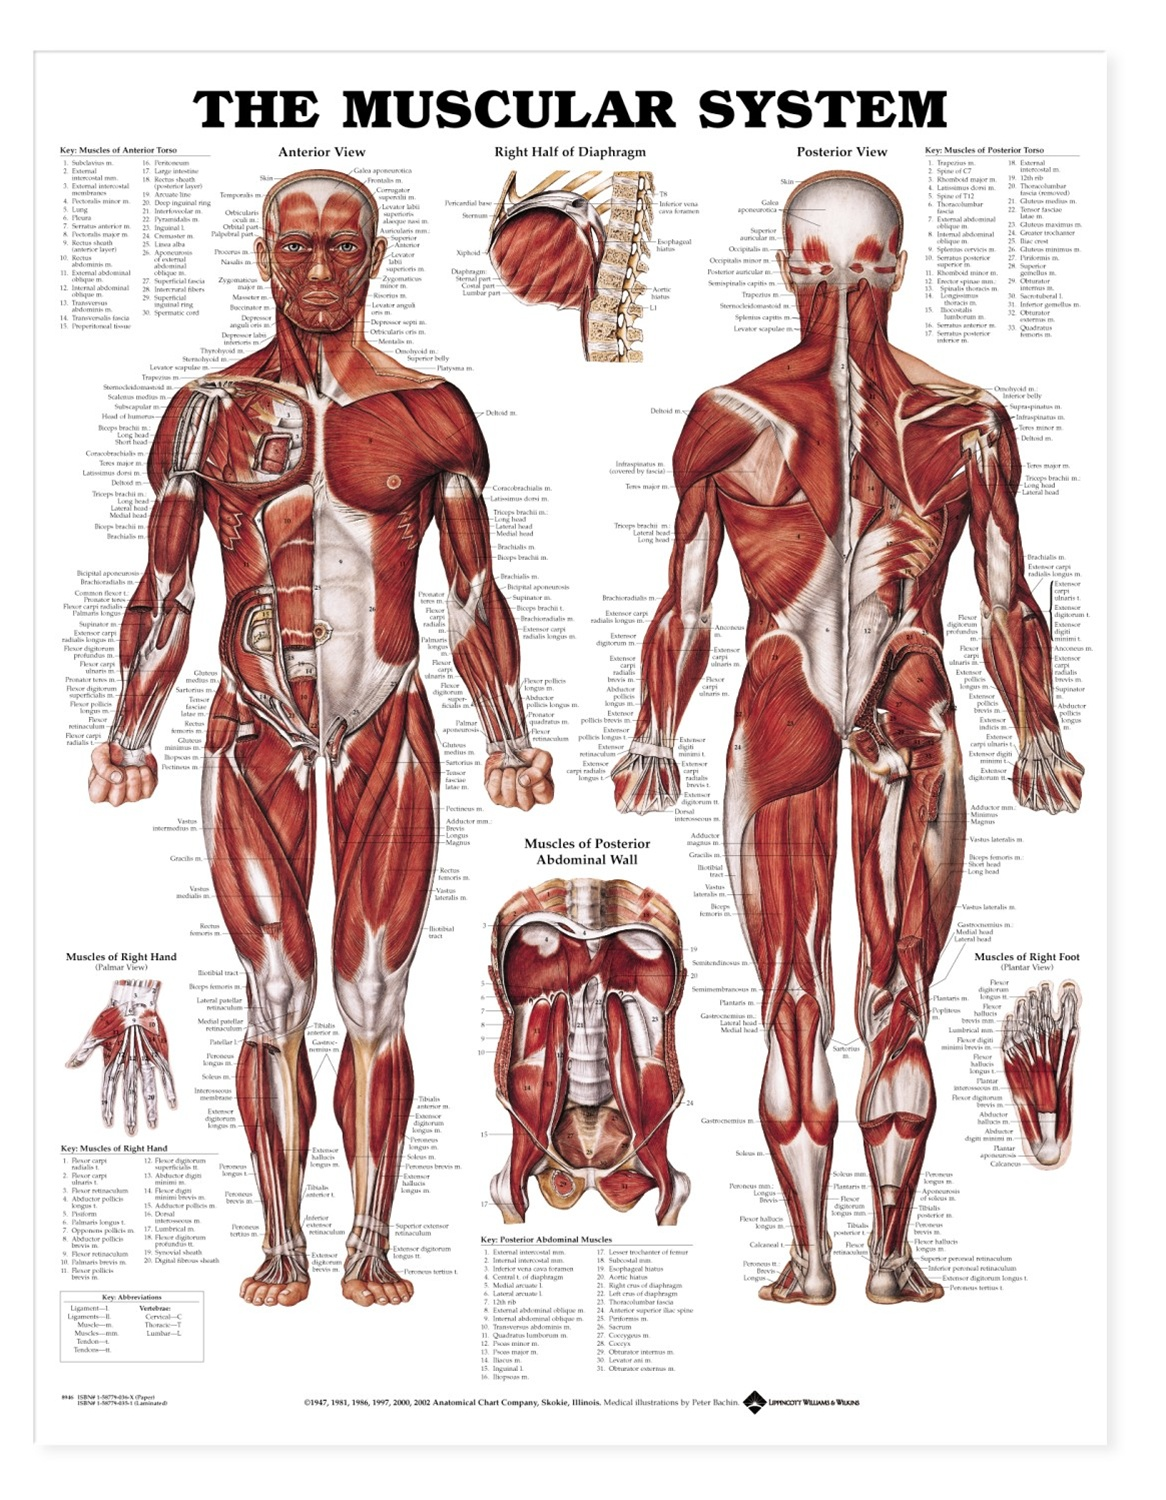 The Muscular System Anatomical Chart - Anatomy Models and Anatomical ...